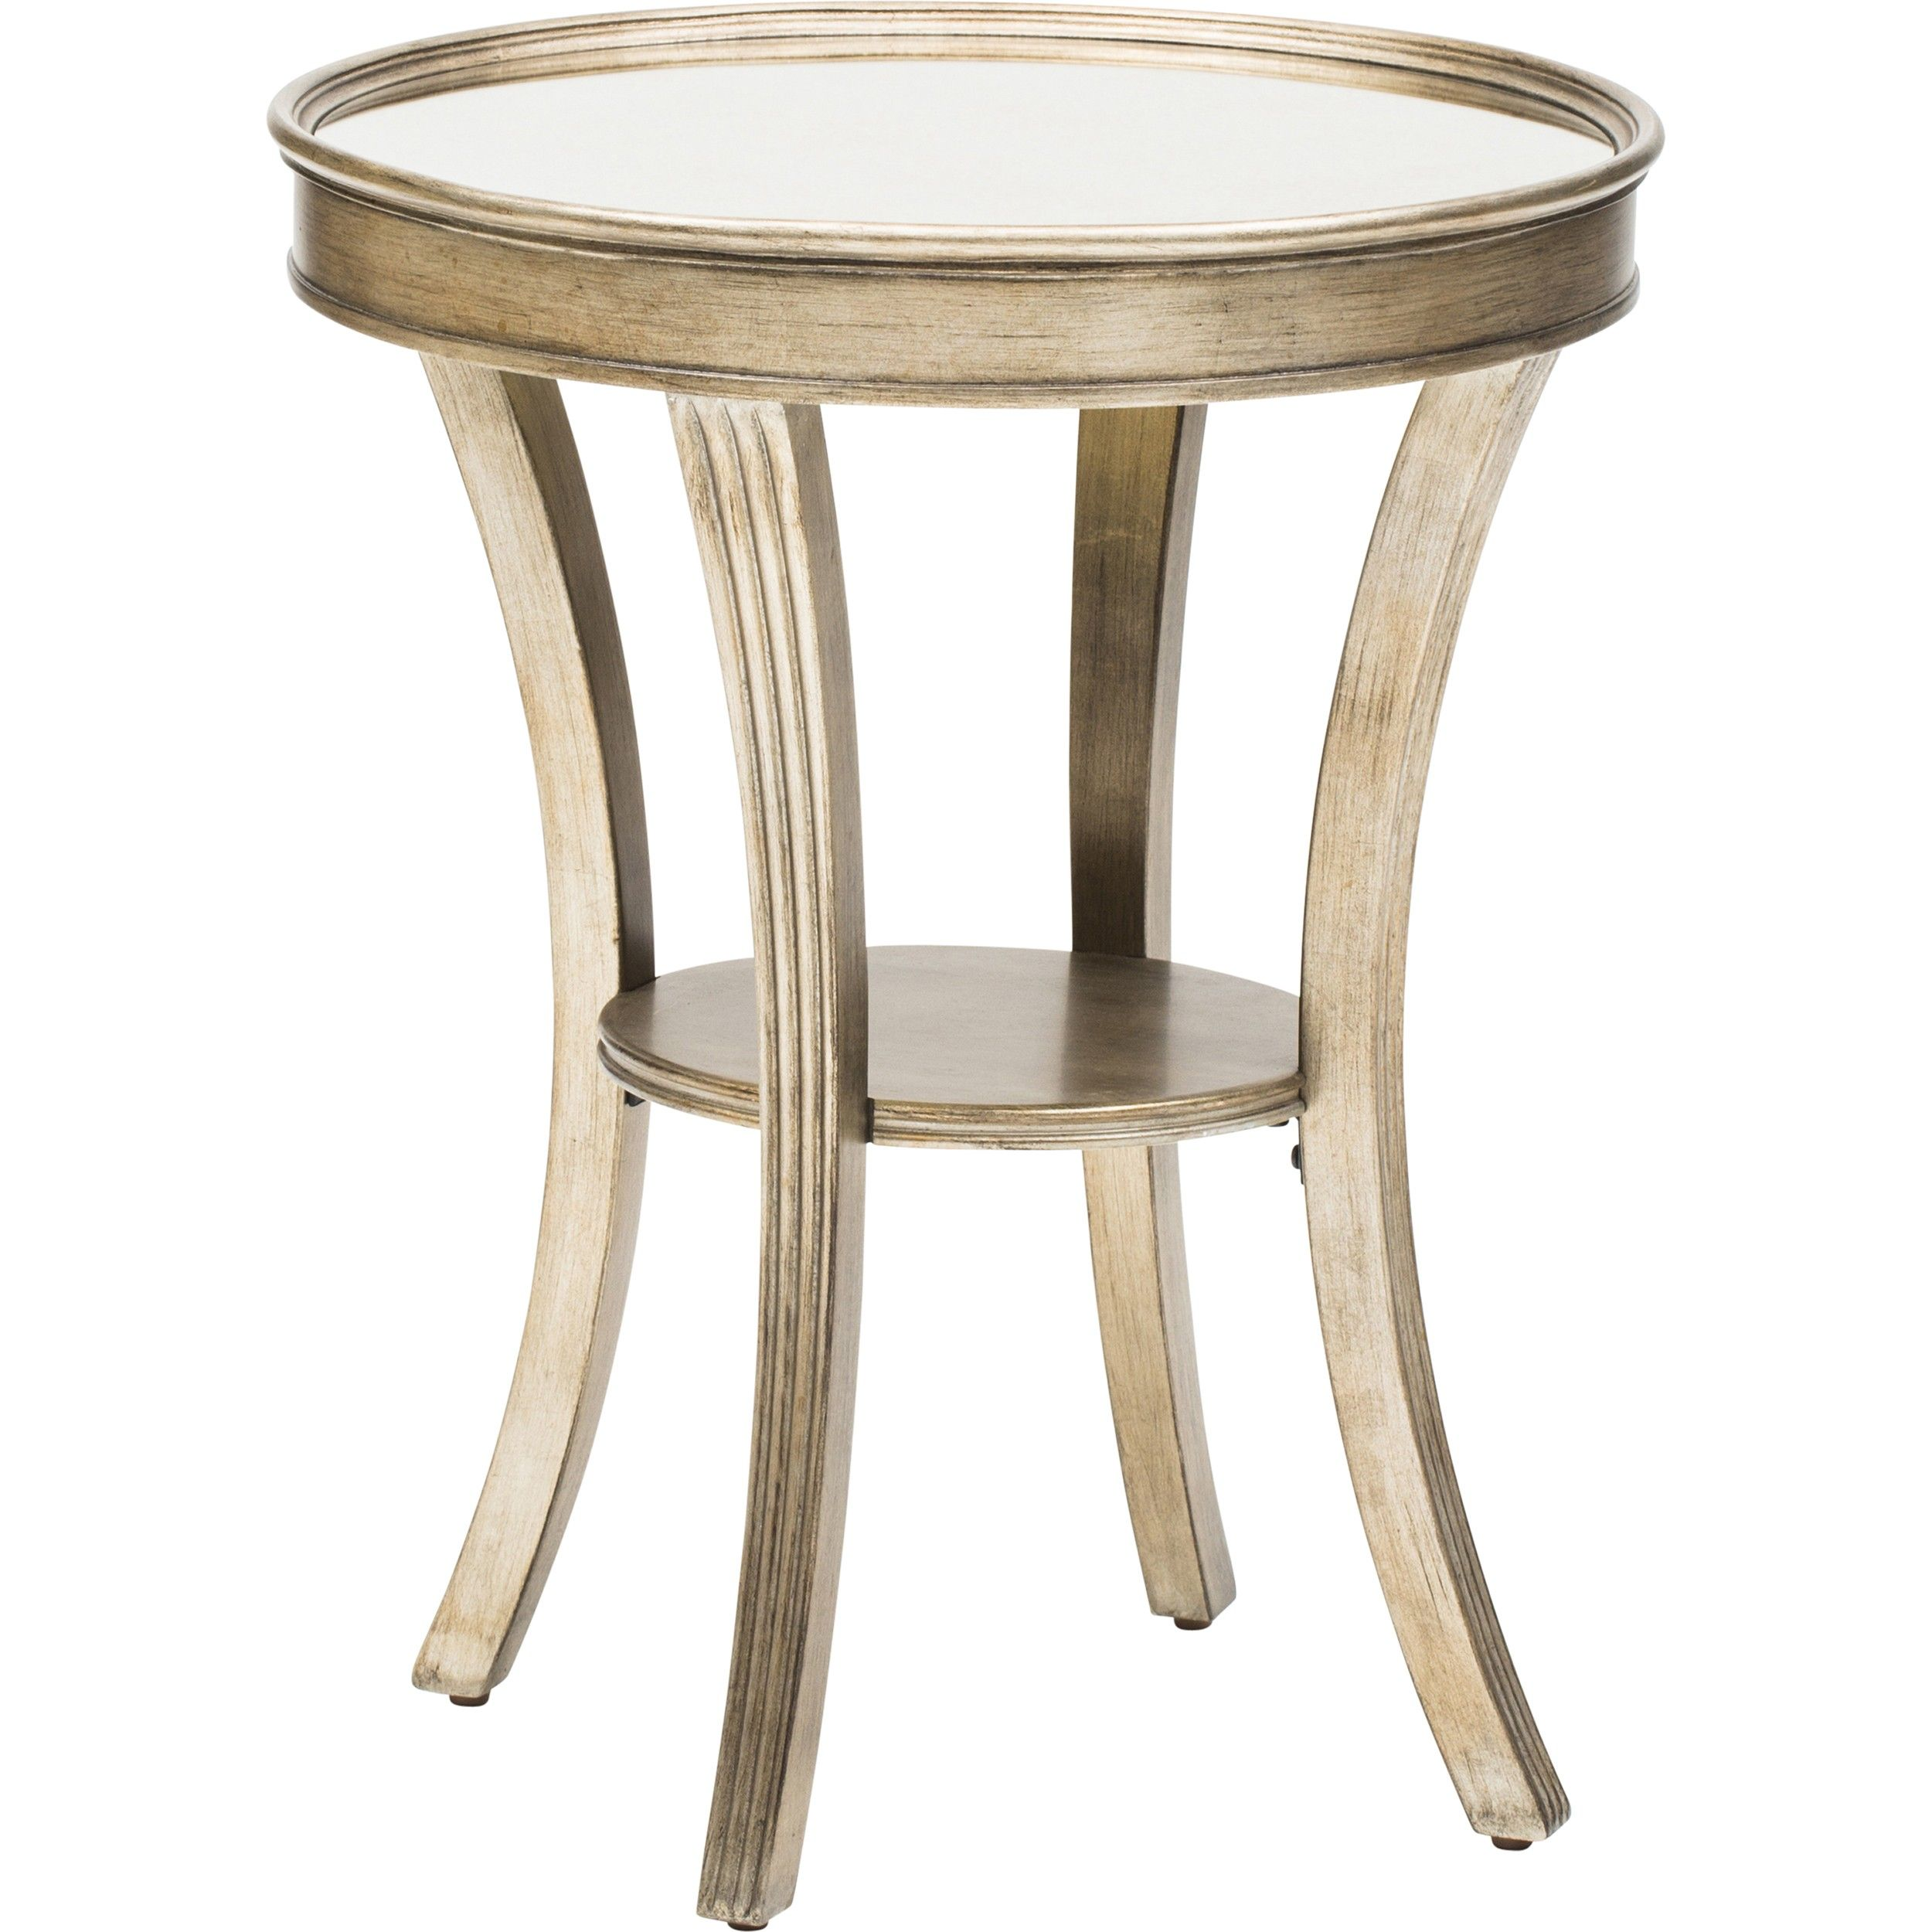 round mirror accent table mirrored furniture tables end what new telesco legs keter ice diy dining small vintage console rust colored tablecloth black wicker outdoor chairs rose